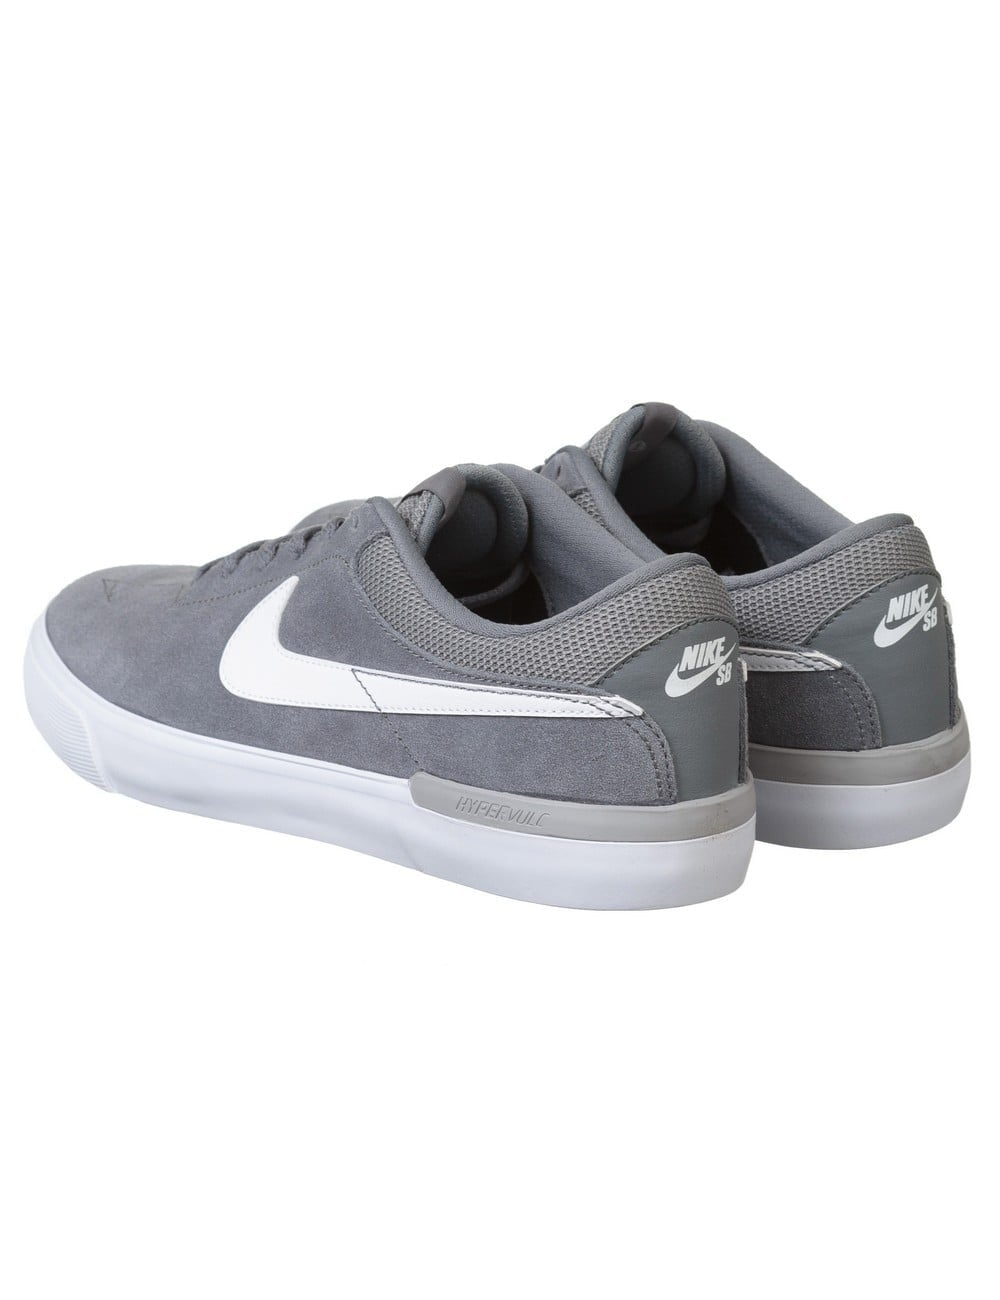 Eric Koston Hypervulc Shoes - Cool Grey/White